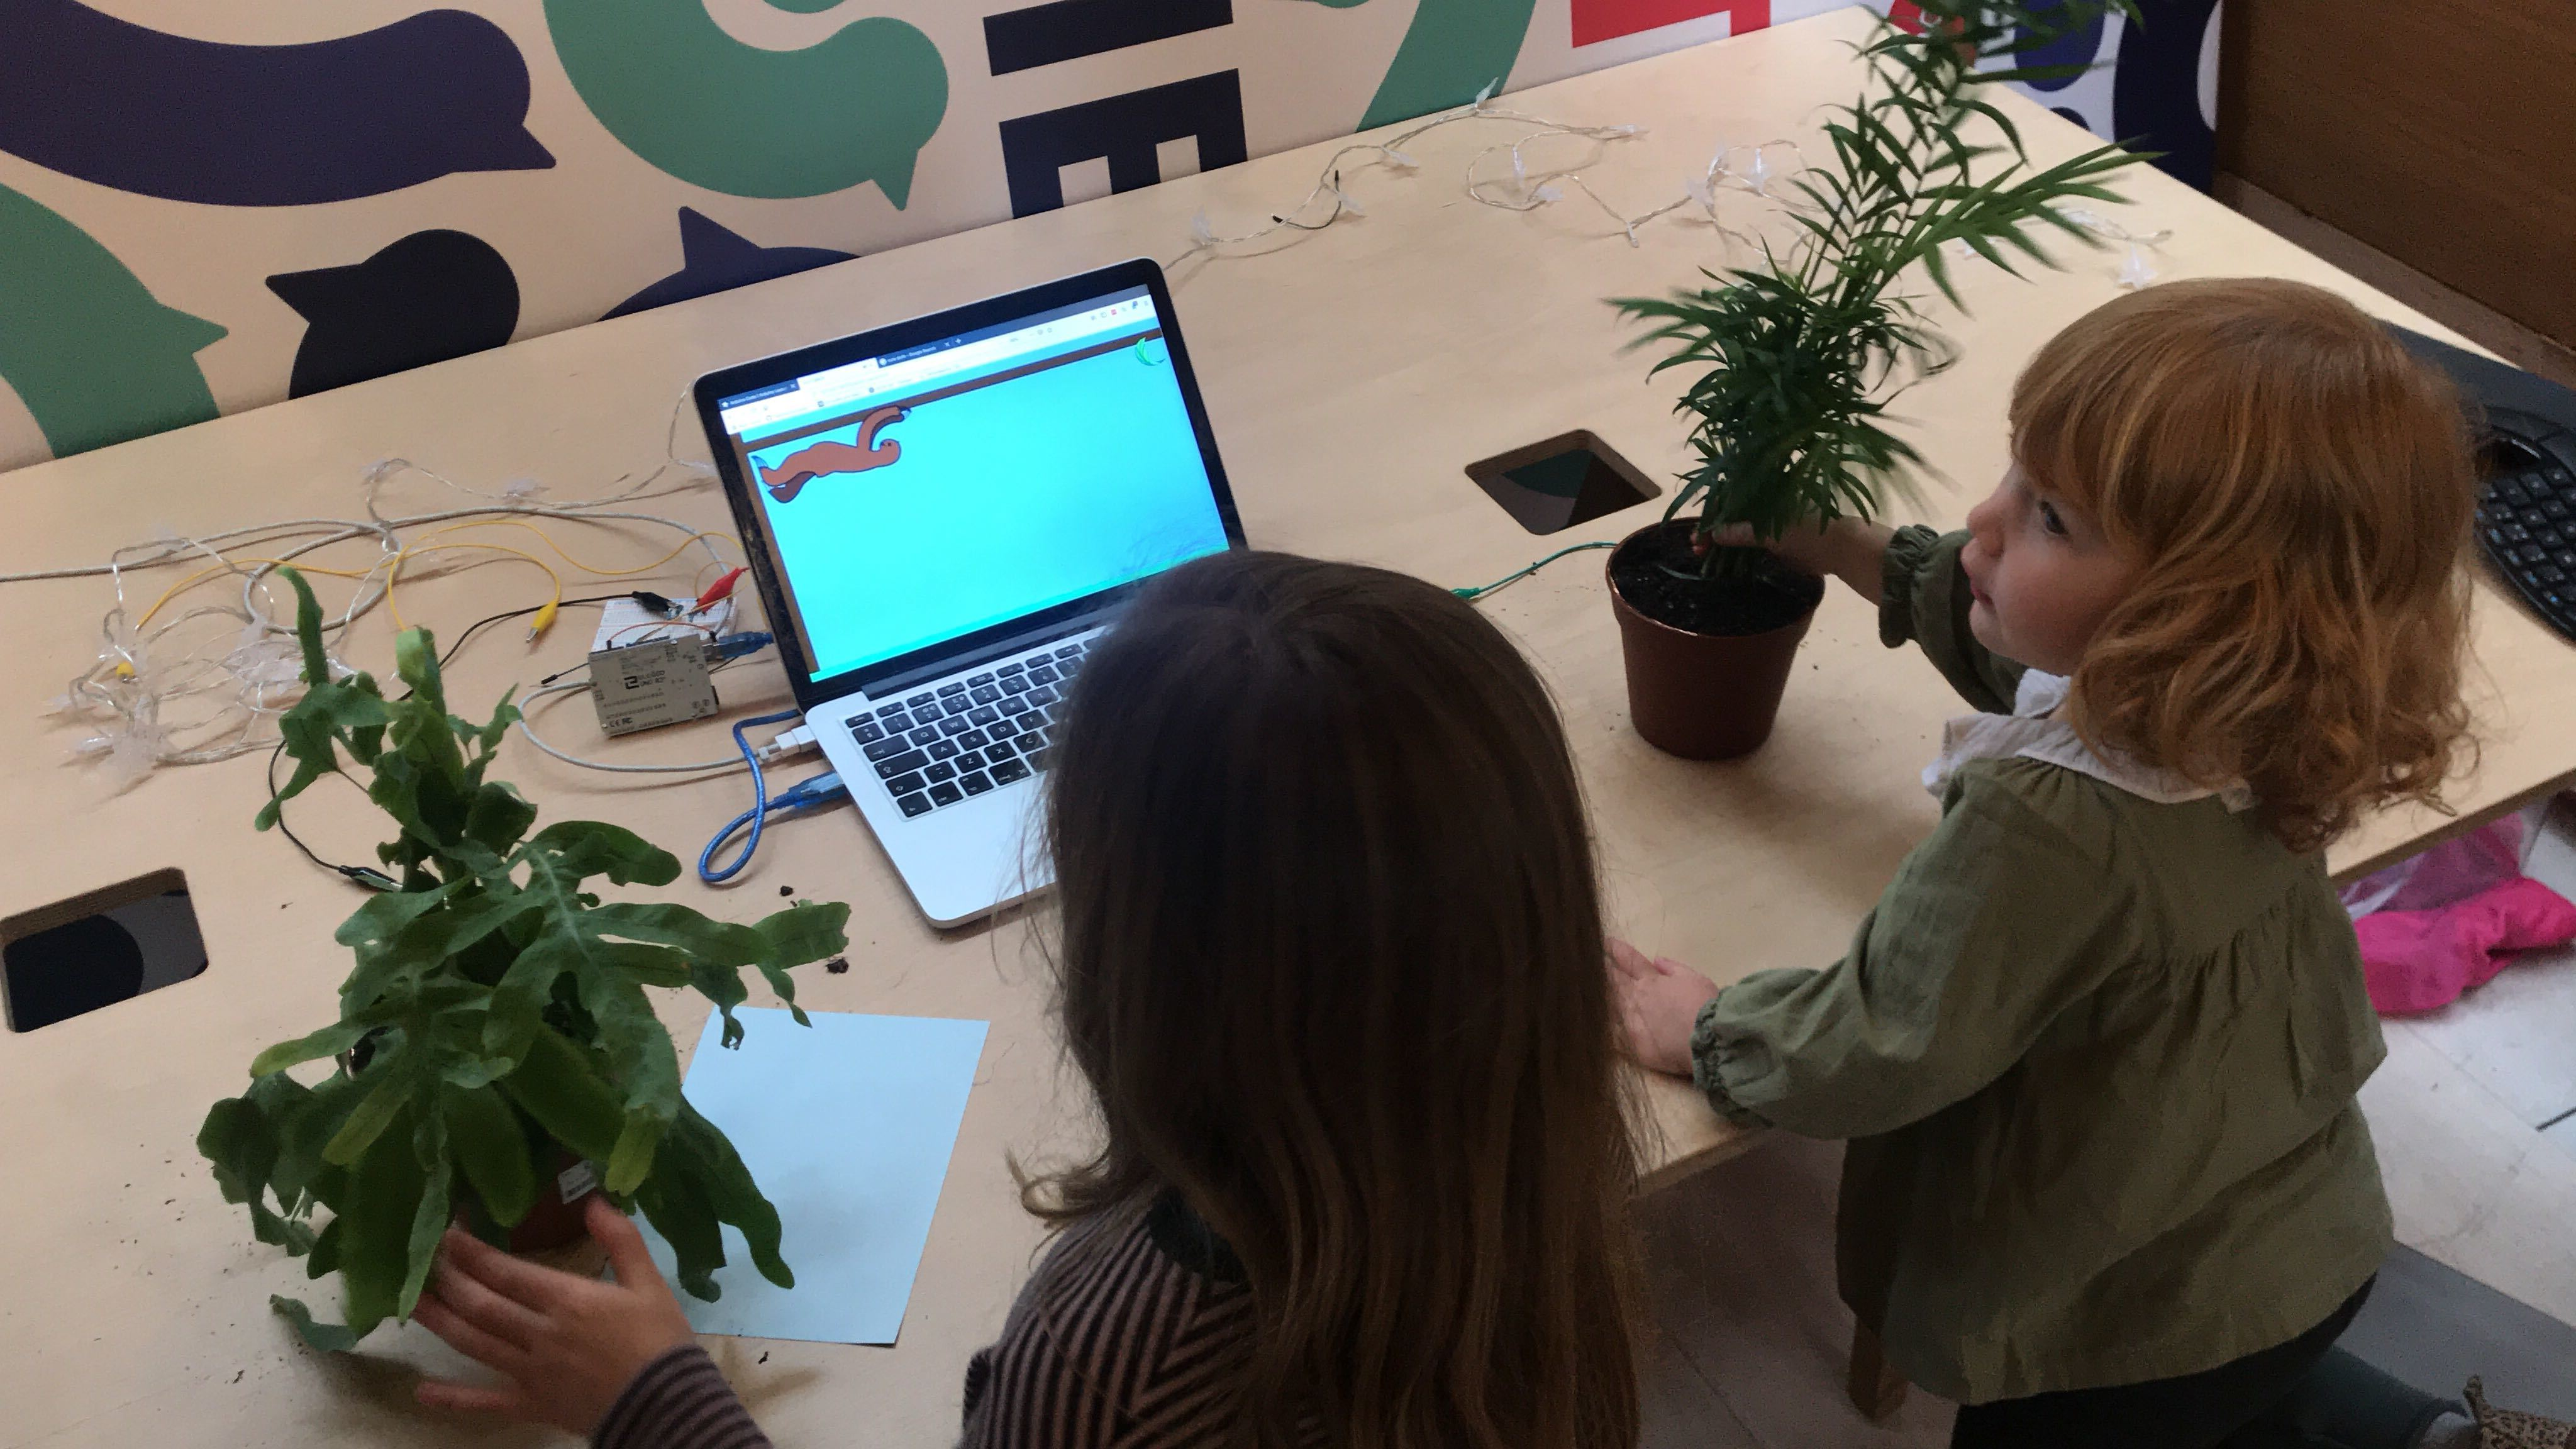 Two young girls playing a game using plants